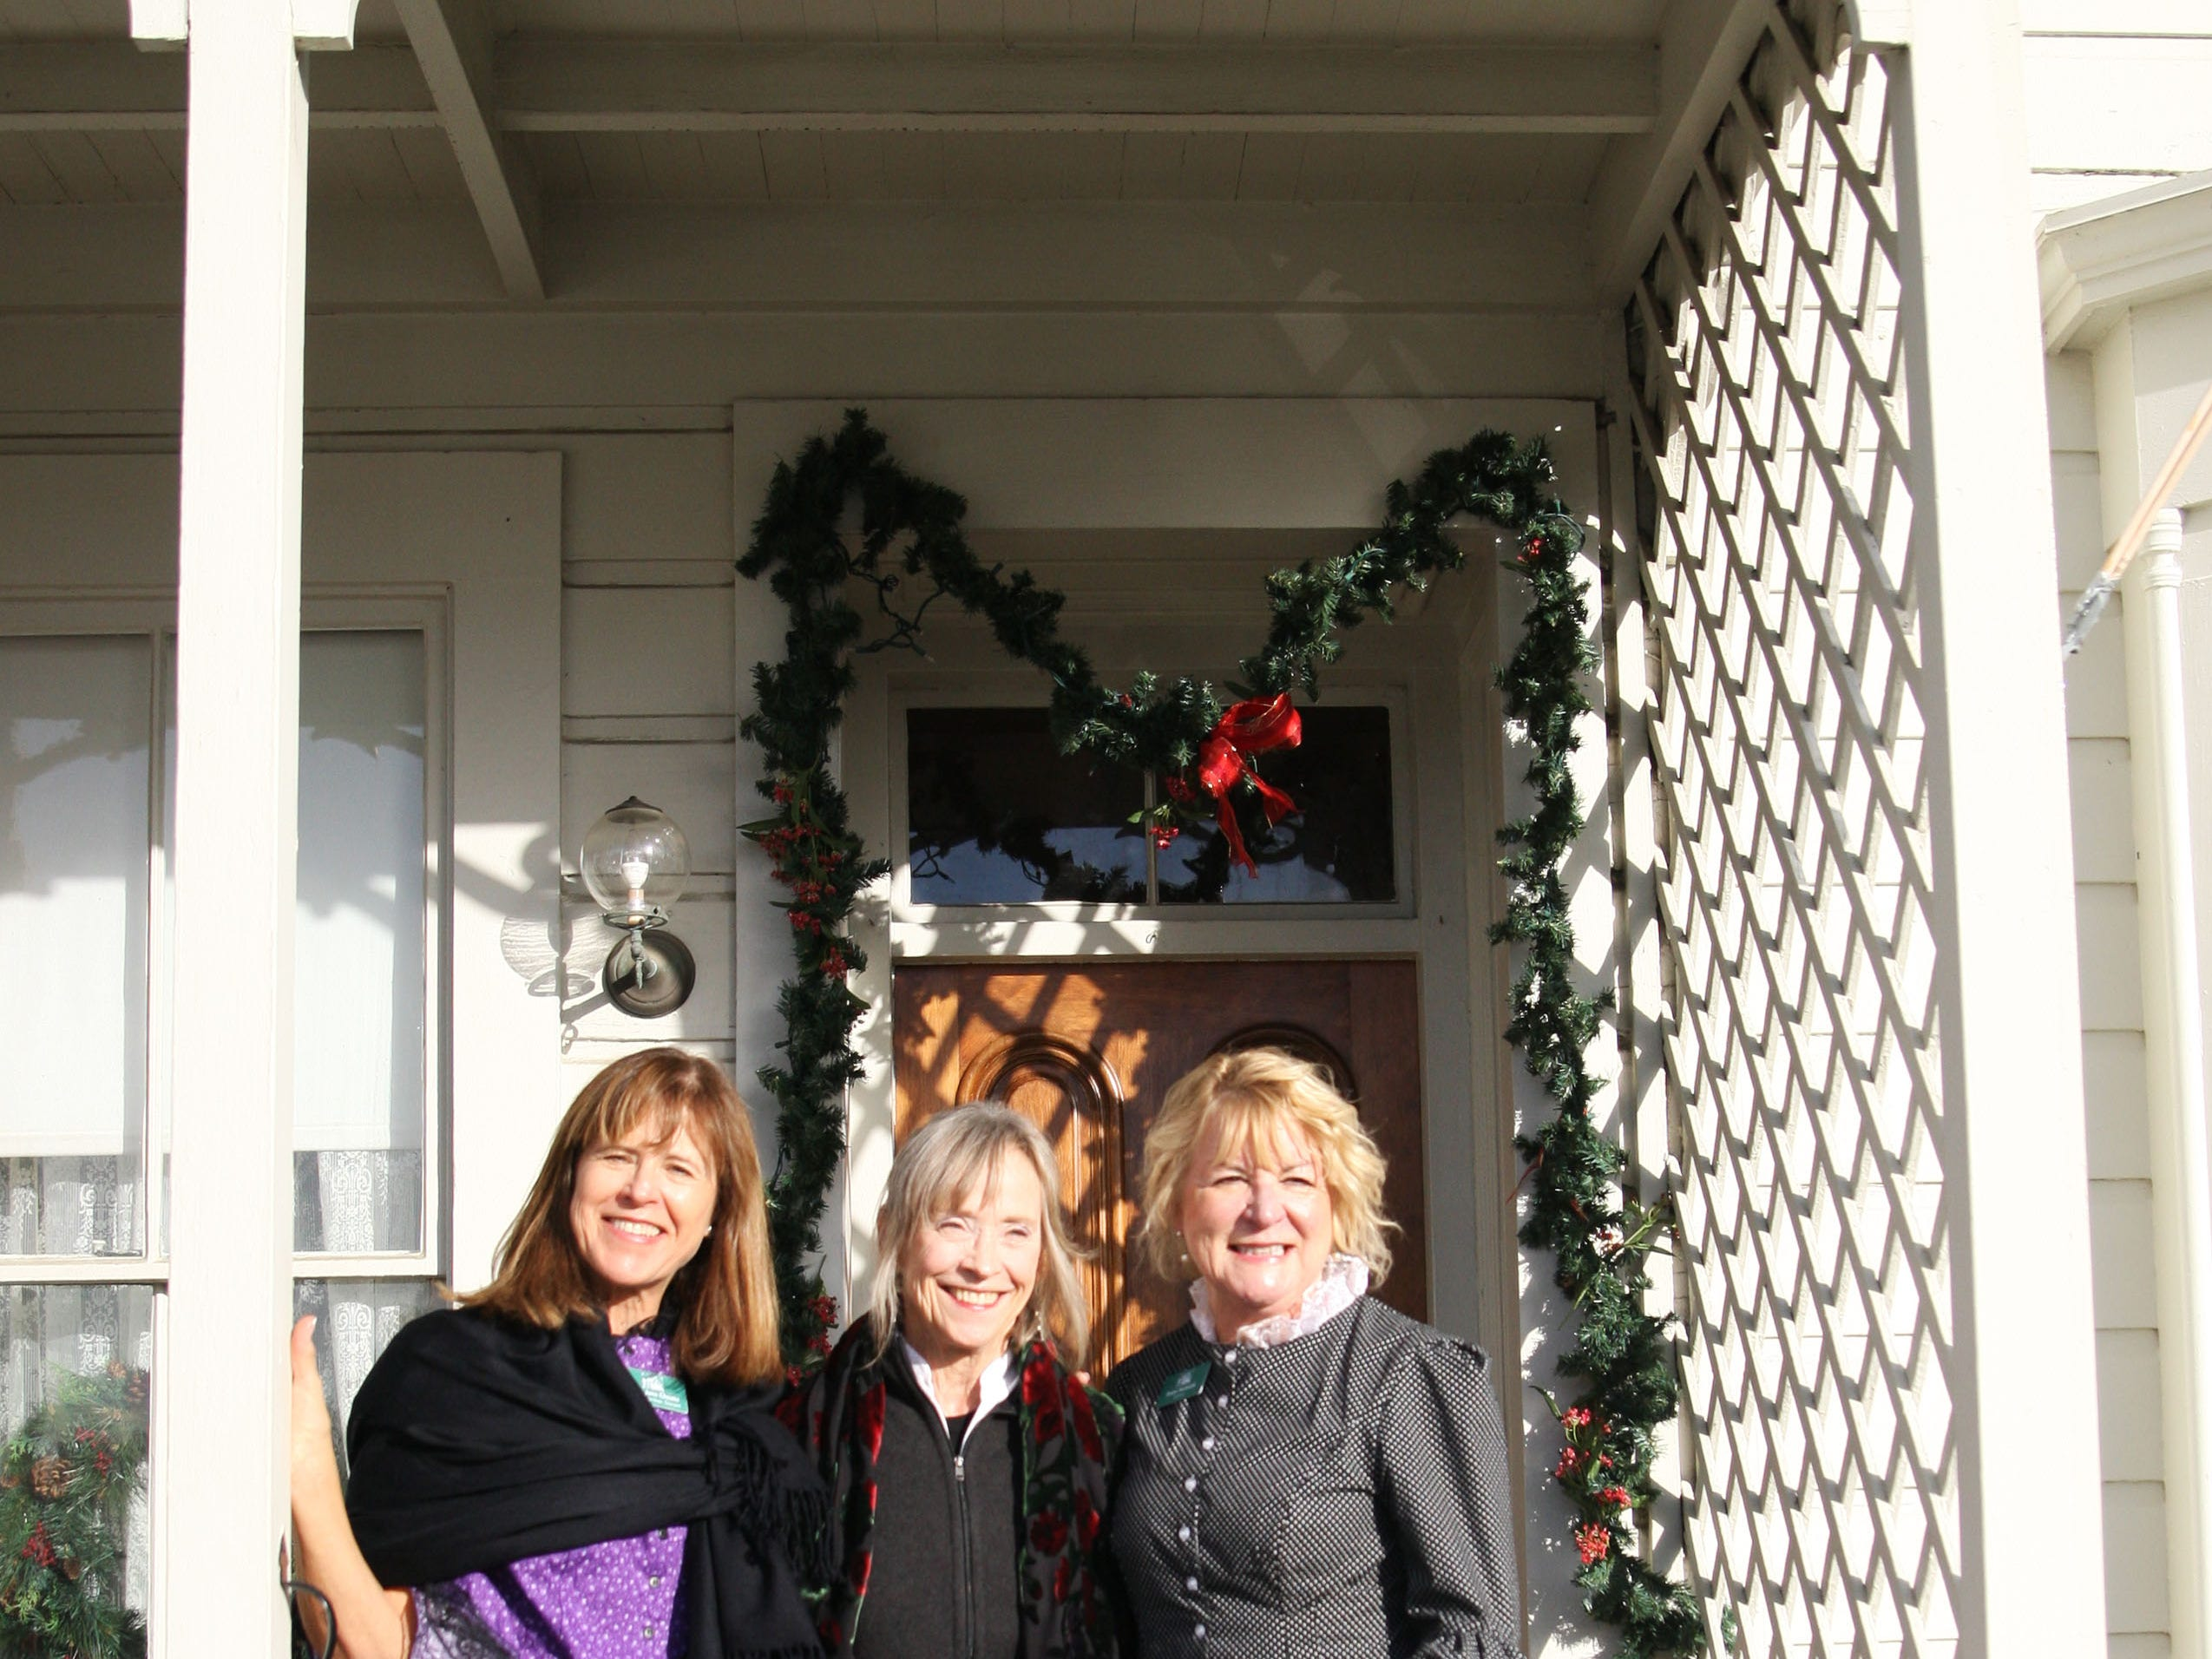 Mary Jane Choate, ret. judge Kay Kingsley and Susan Hartsock, all volunteers at the house, pose in their gowns. They give tours of the house.